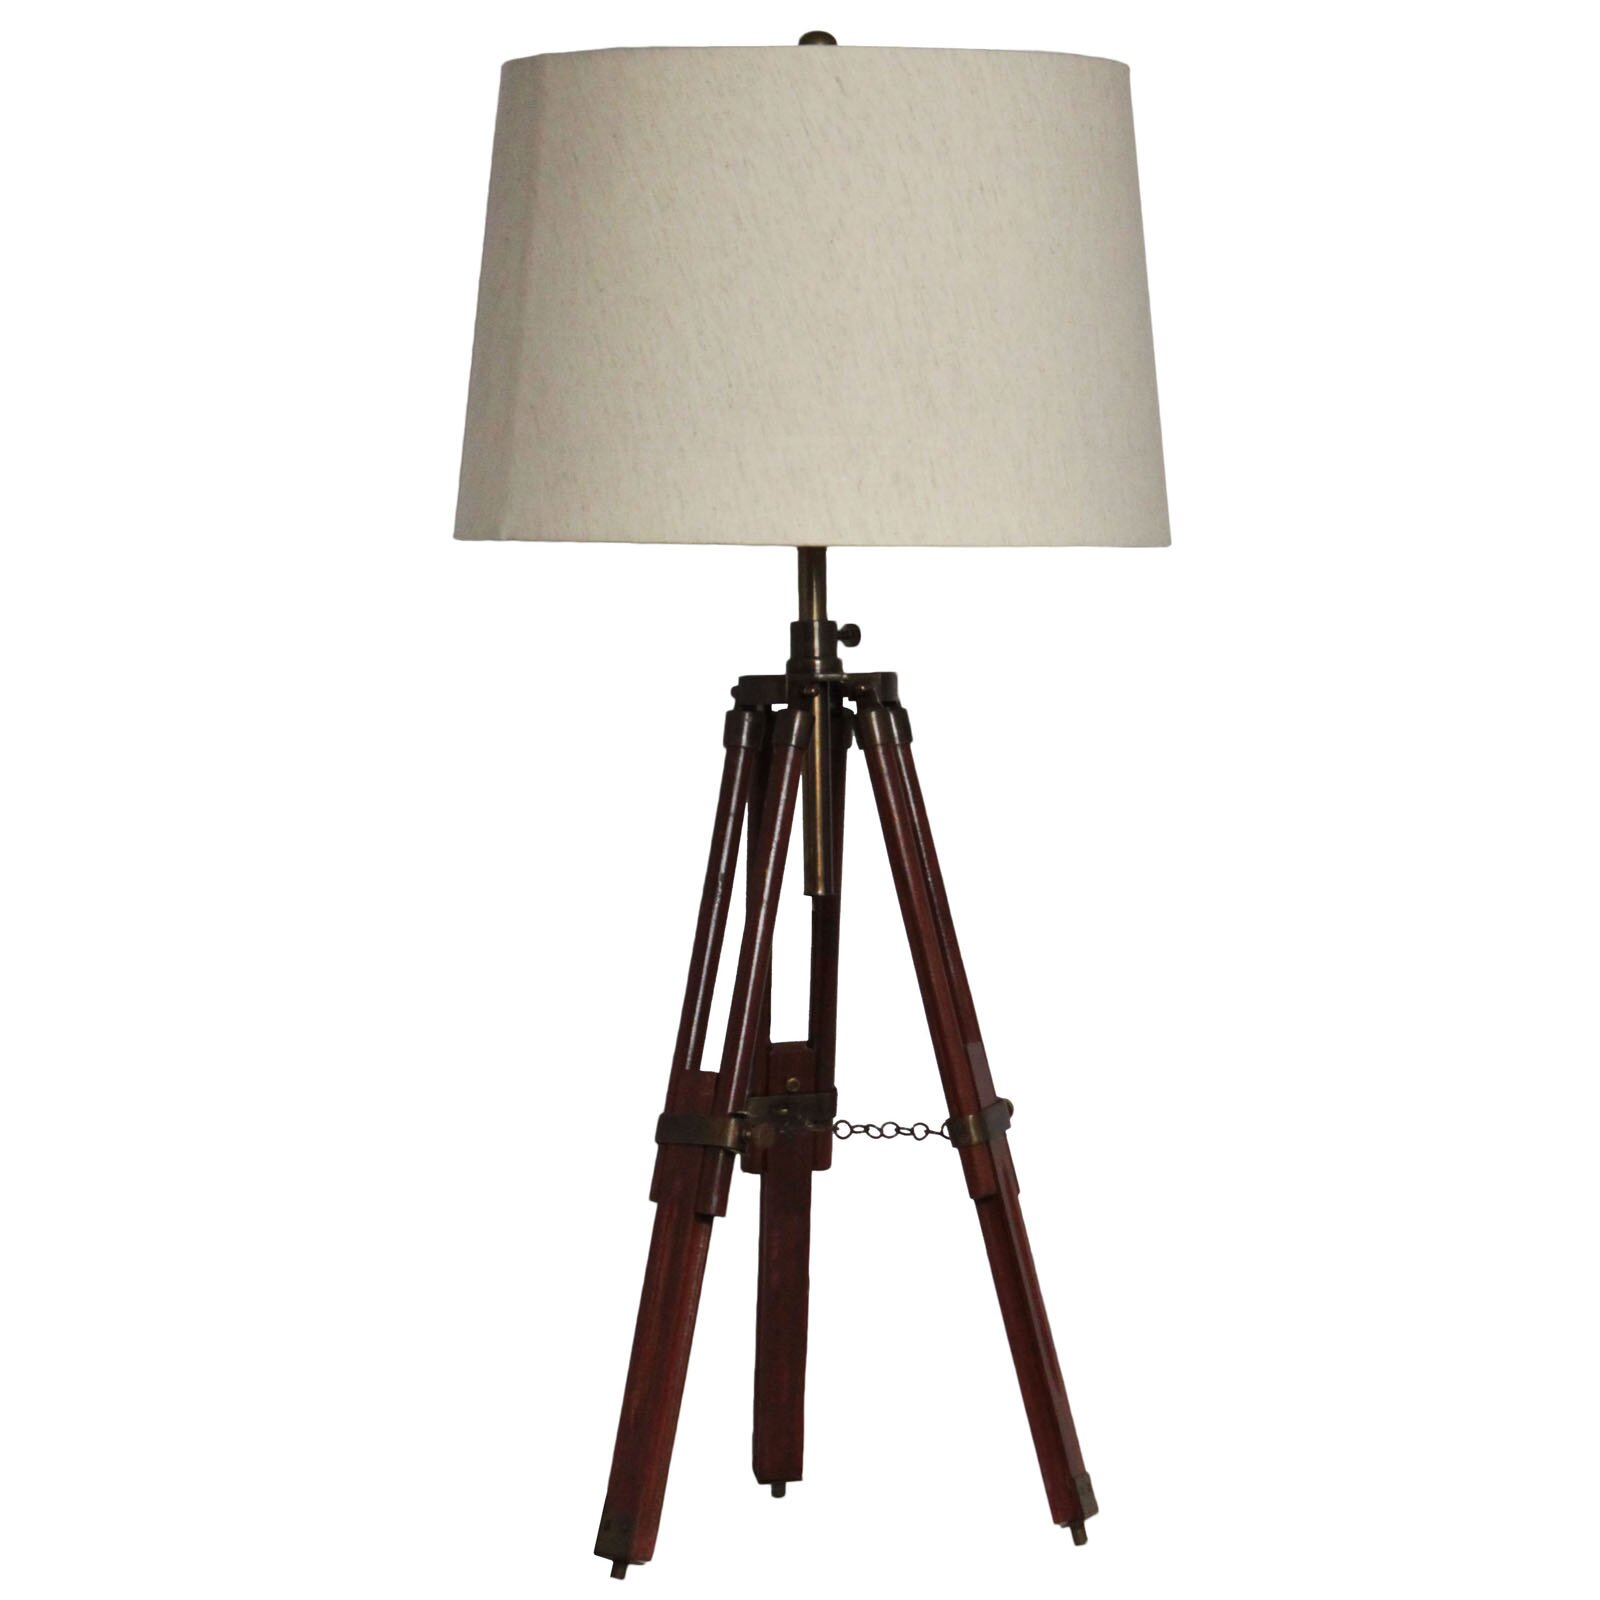 urban designs surveyor 29 table lamps set of 2. Black Bedroom Furniture Sets. Home Design Ideas